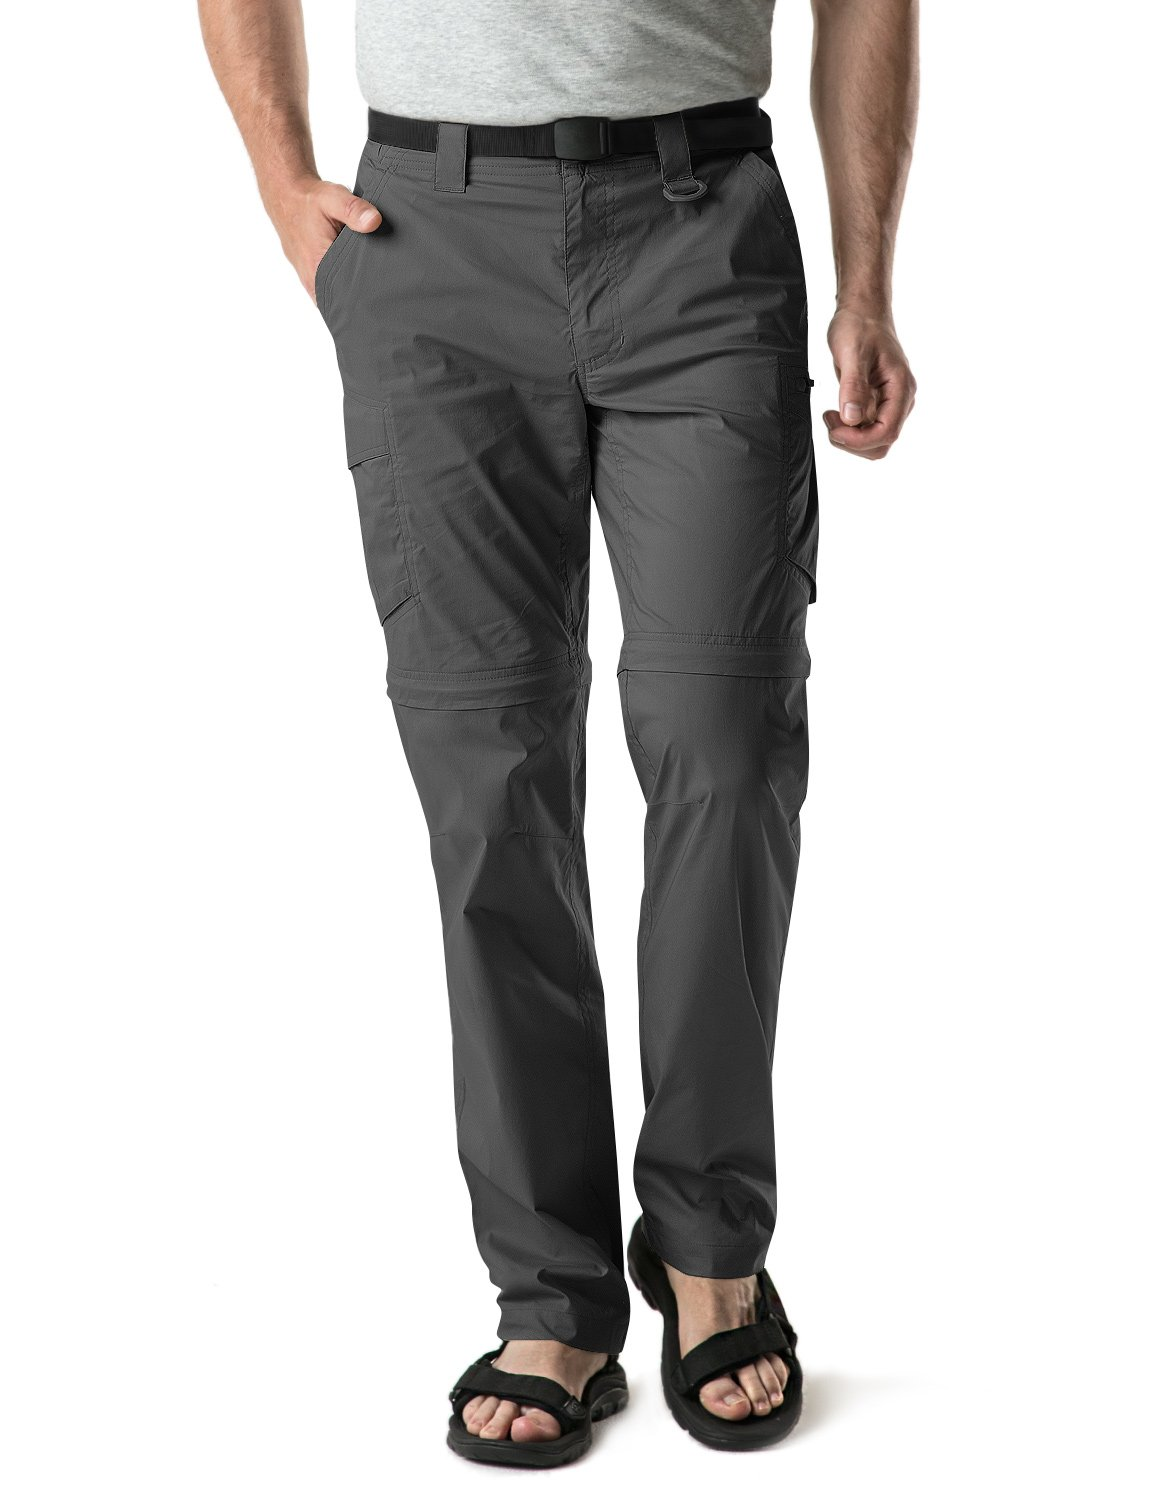 CQR CQ-TXP402-CHC_32W/30L Men's Convertible Pants Zipp Off Stretch Durable UPF 50+ Quick Dry Cargo Shorts Trousers TXP402